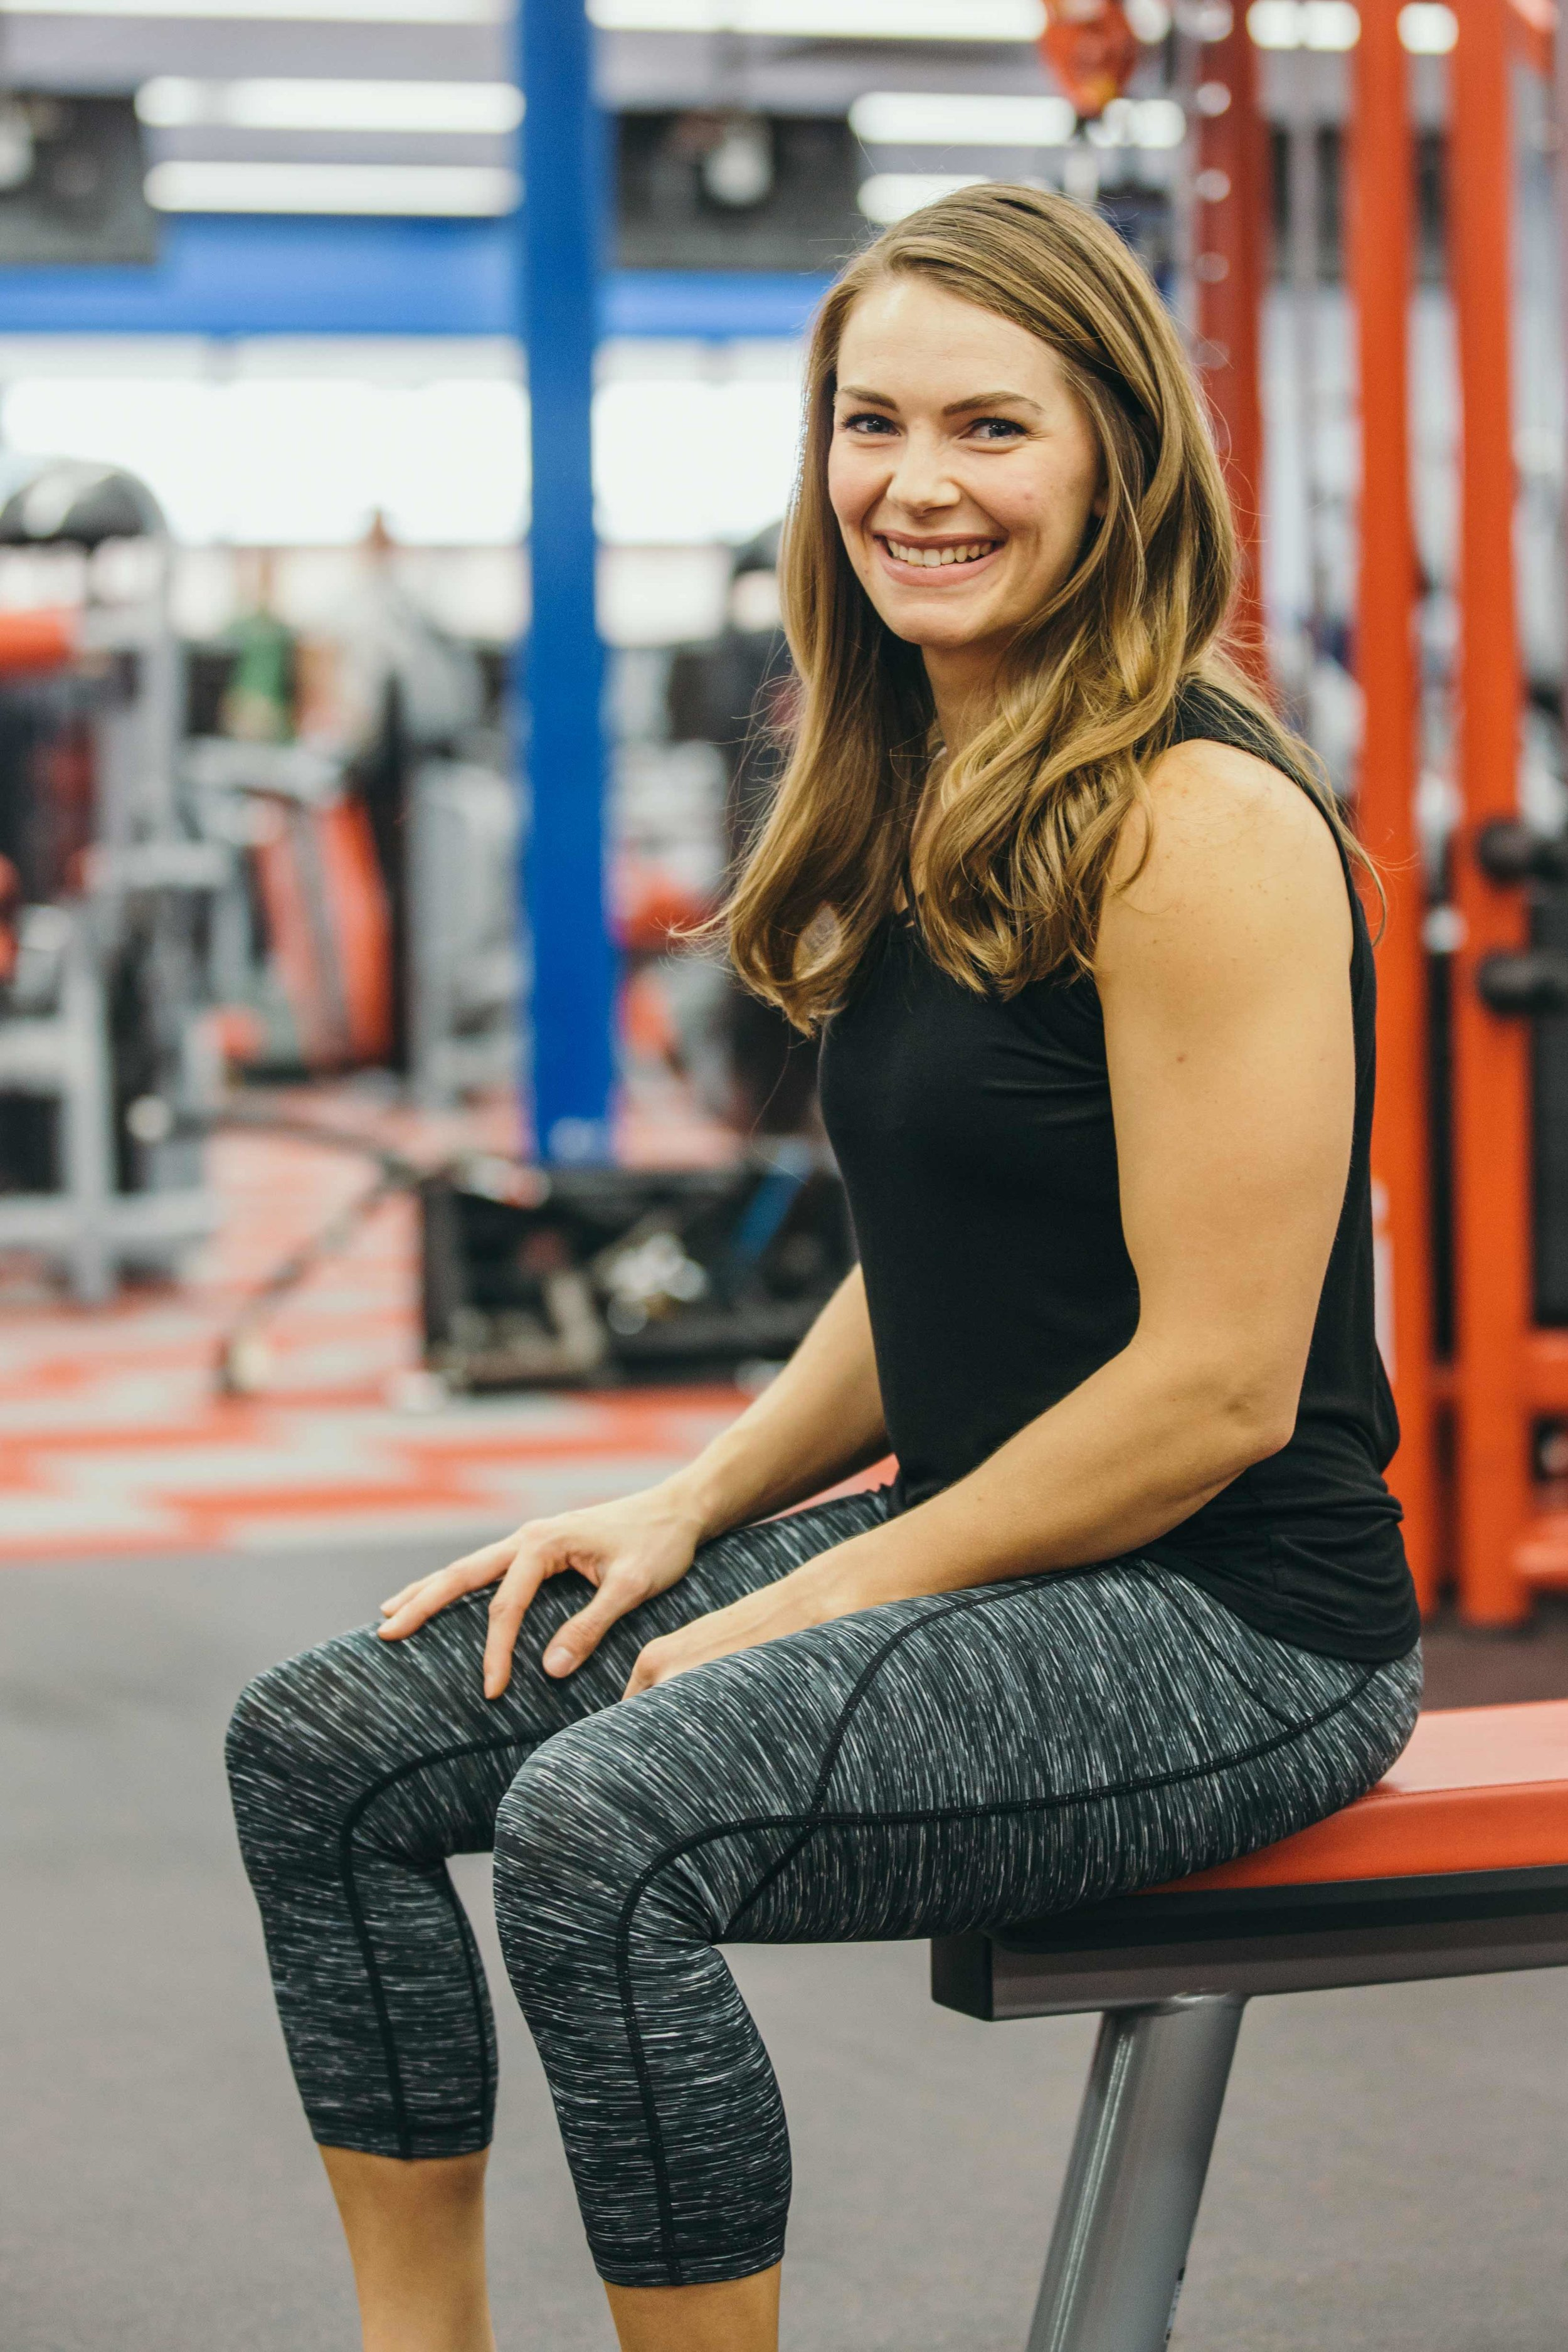 """Hi, I'm Kristen. - Striving to live awake and embrace discomfort each day.Thank you for being here and for your desire to take action and create the life of balance, flexibility, and vibrancy that you deserve.My ten year journey in health and fitness began in a group fitness weight lifting class at age 21. I had no clue what I was doing, but it I knew it was fun and that I wanted more of it in my life!Over the years, I've been consistently building my education in exercise science, nutrition, and mindset. I've competed in triathlons, powerlifting competitions, and races, and am also a Brazilian Jiu-Jitsu practitioner.My passion is in coaching in the areas of mindset, nutrition, and exercise, which I do via my signature program """"Mind Fare 90""""."""